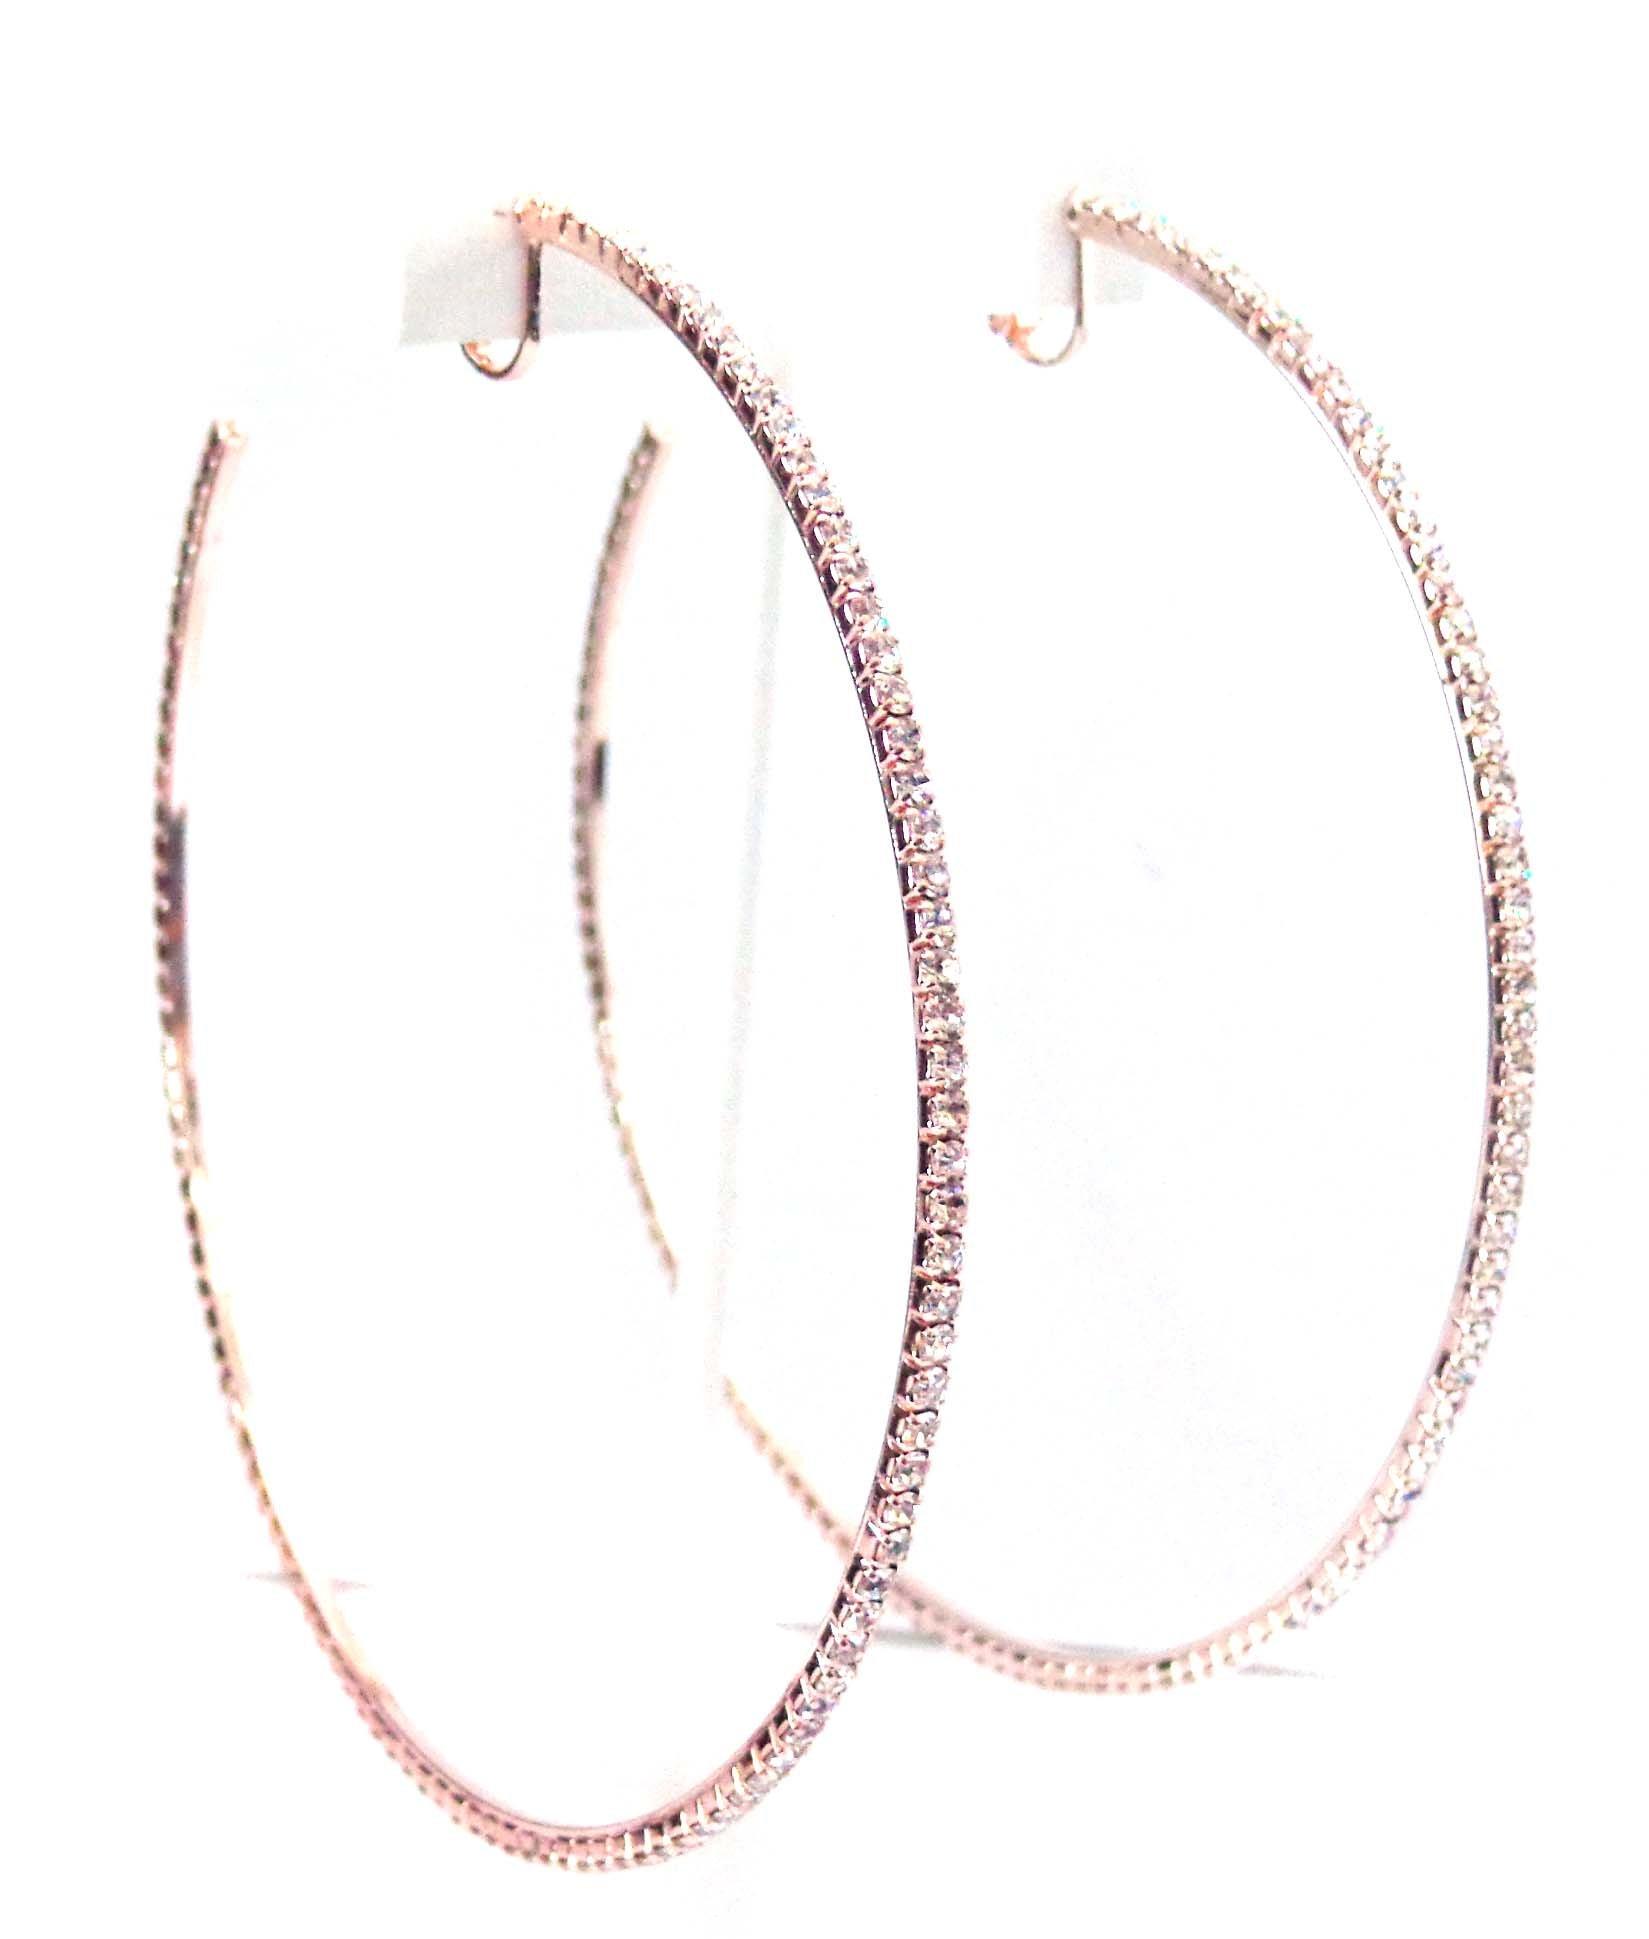 Clip-on Earrings Crystal Hoop Rose Gold Plated Rhinestone Hoops 4 inch Hoops by Fashion Jewelry